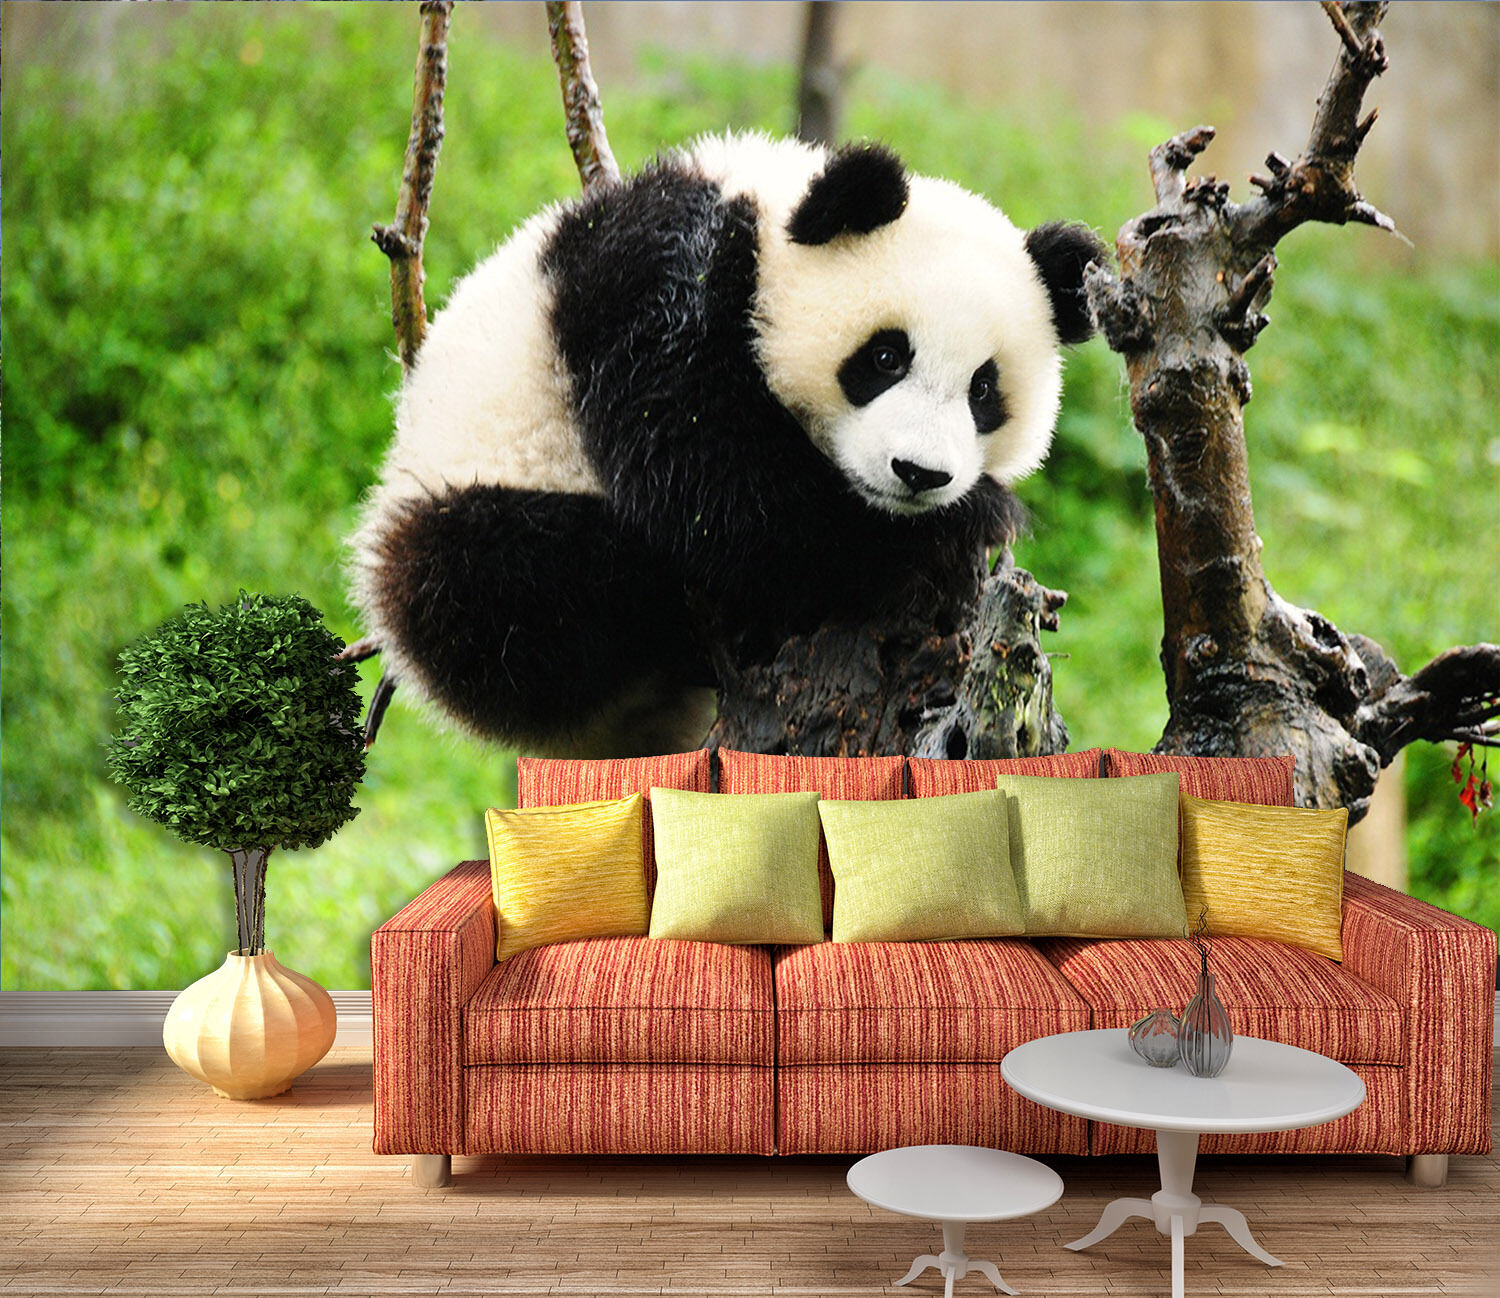 3D Branches Panda 339 Wall Paper wall Print Decal Wall Deco Indoor wall Mural